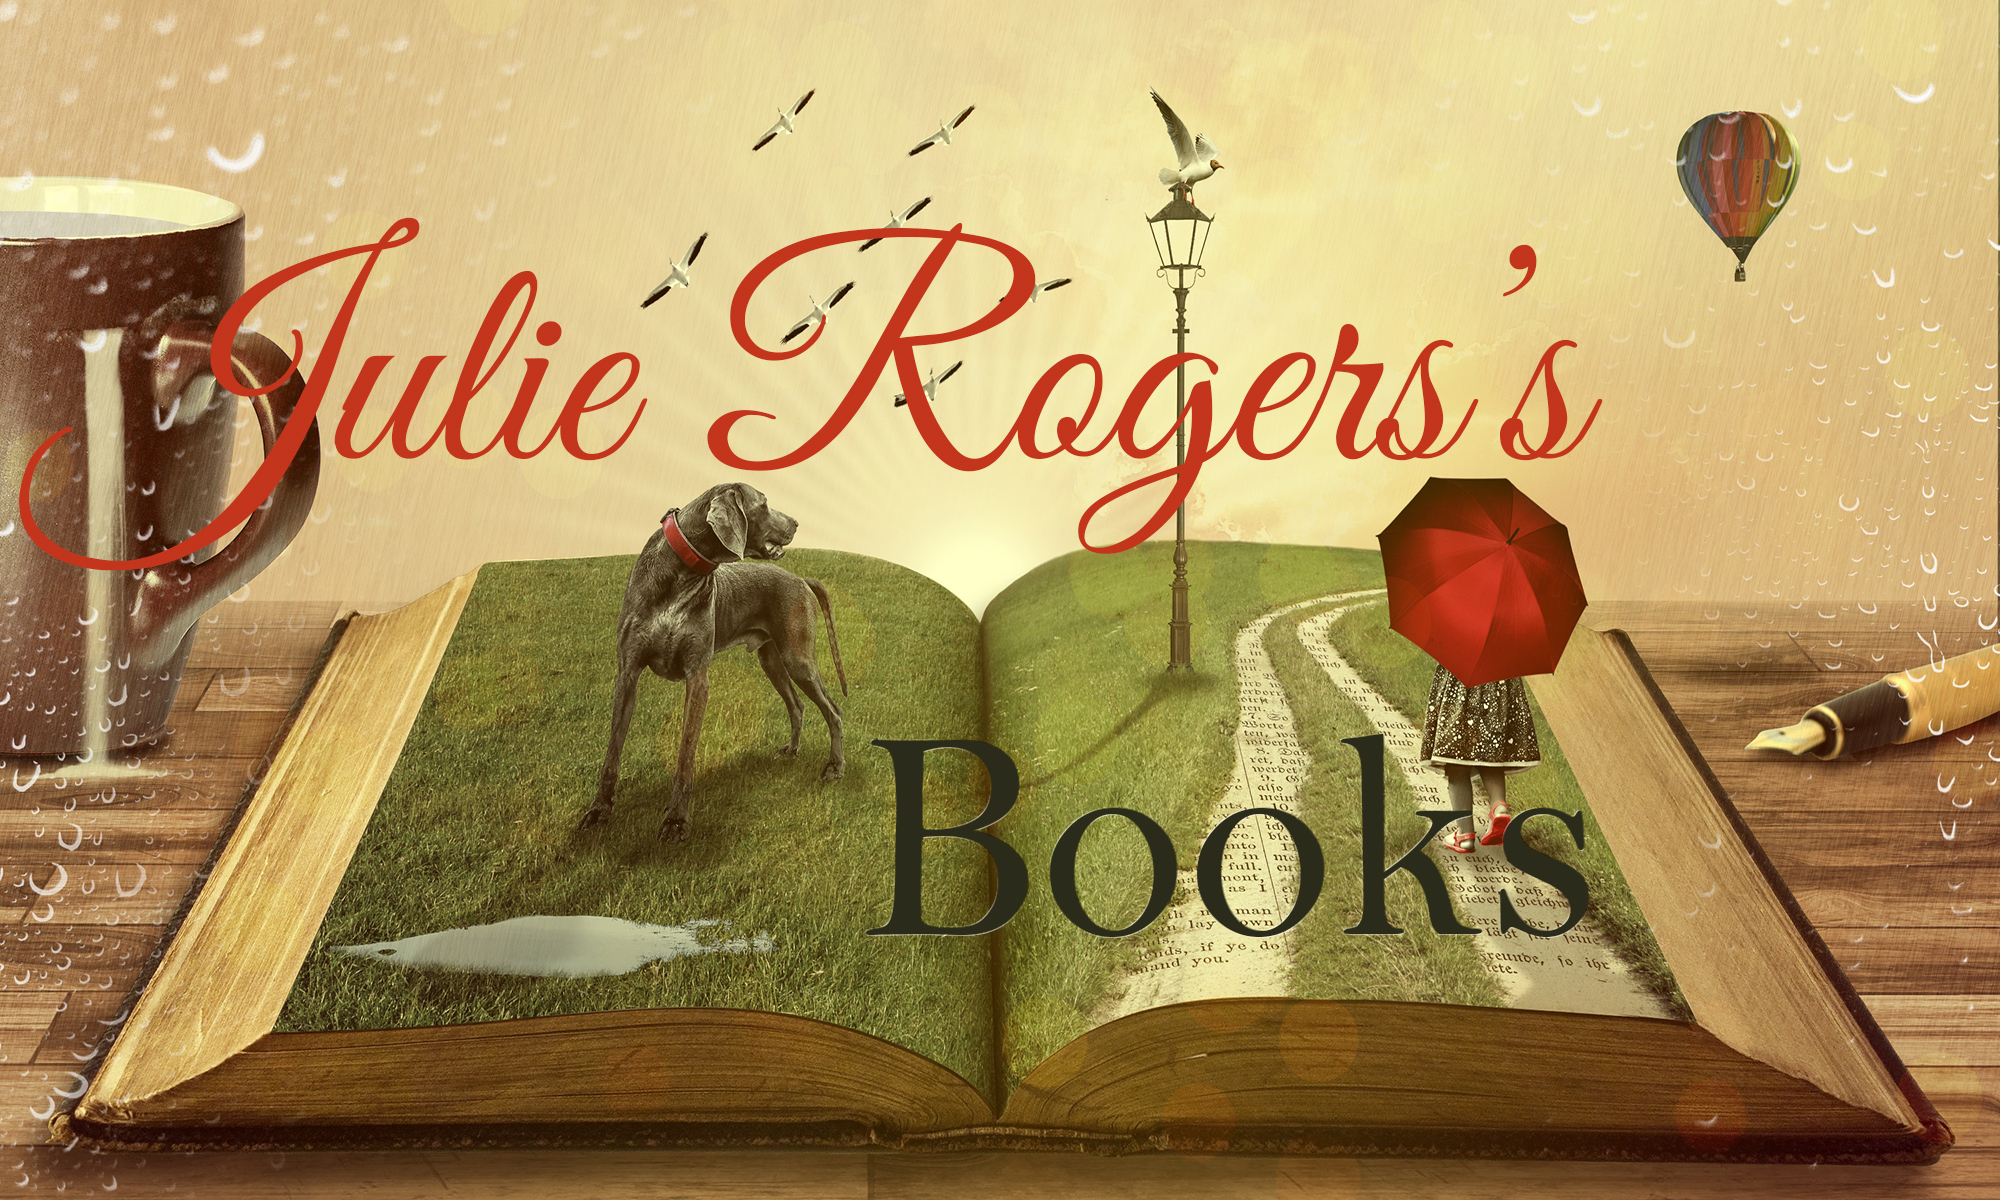 Julie Rogers's Books